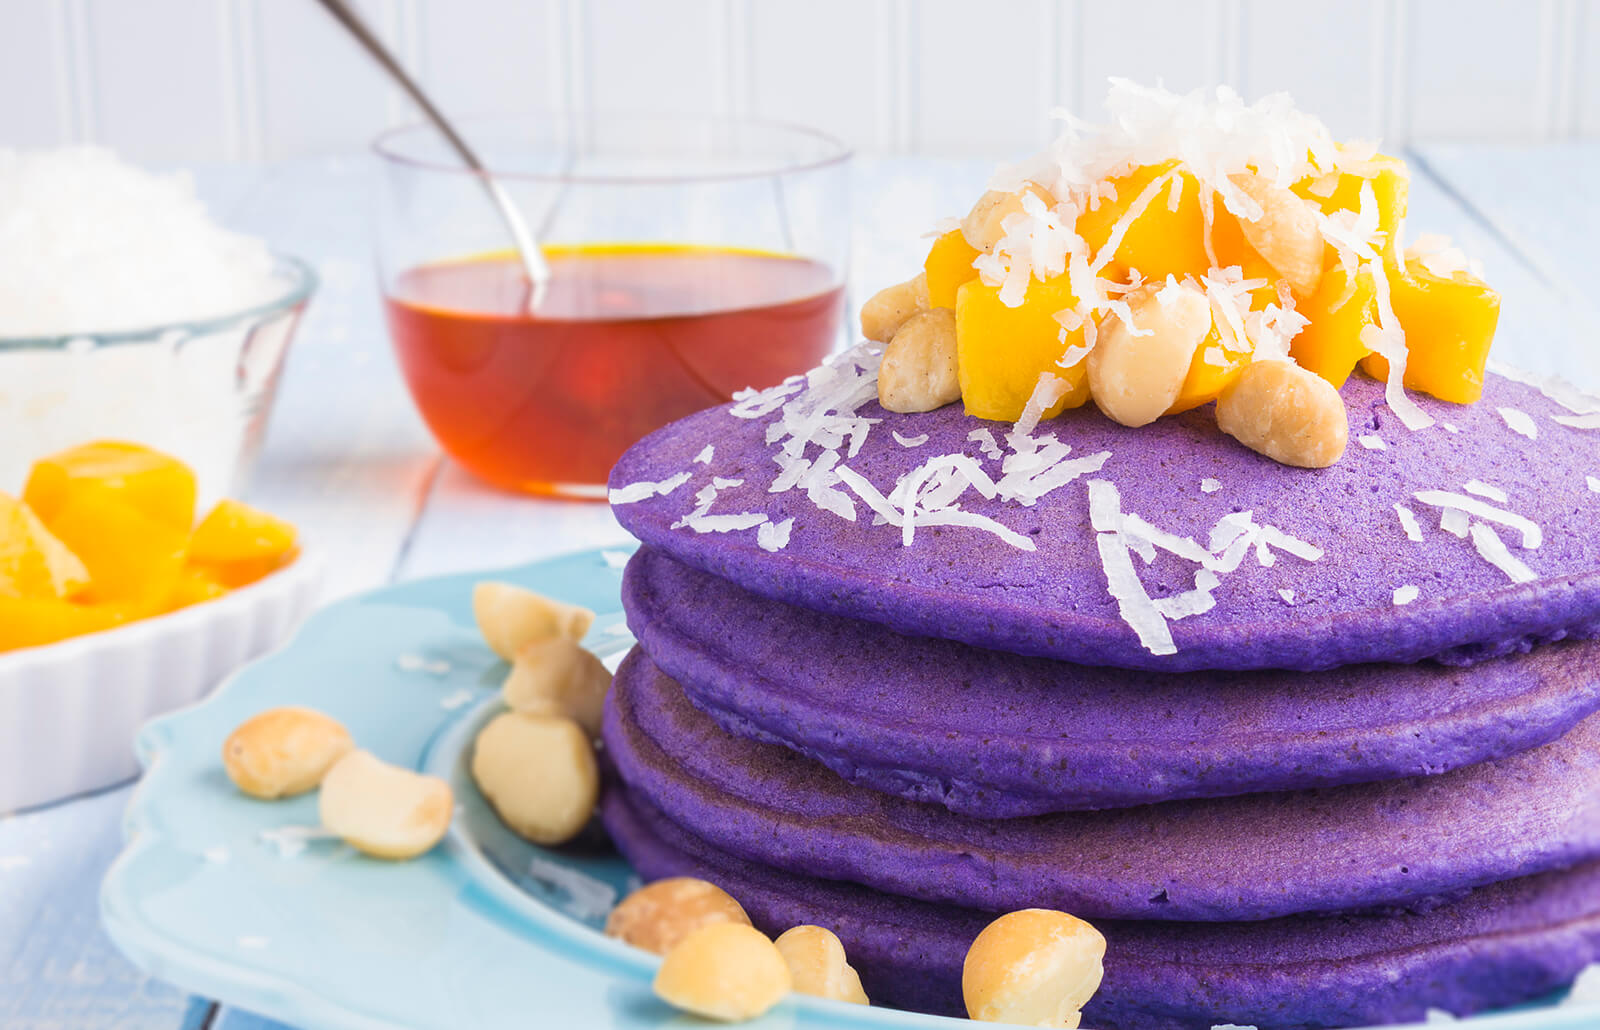 House of Pancakes, A Unique and Delicious Idea